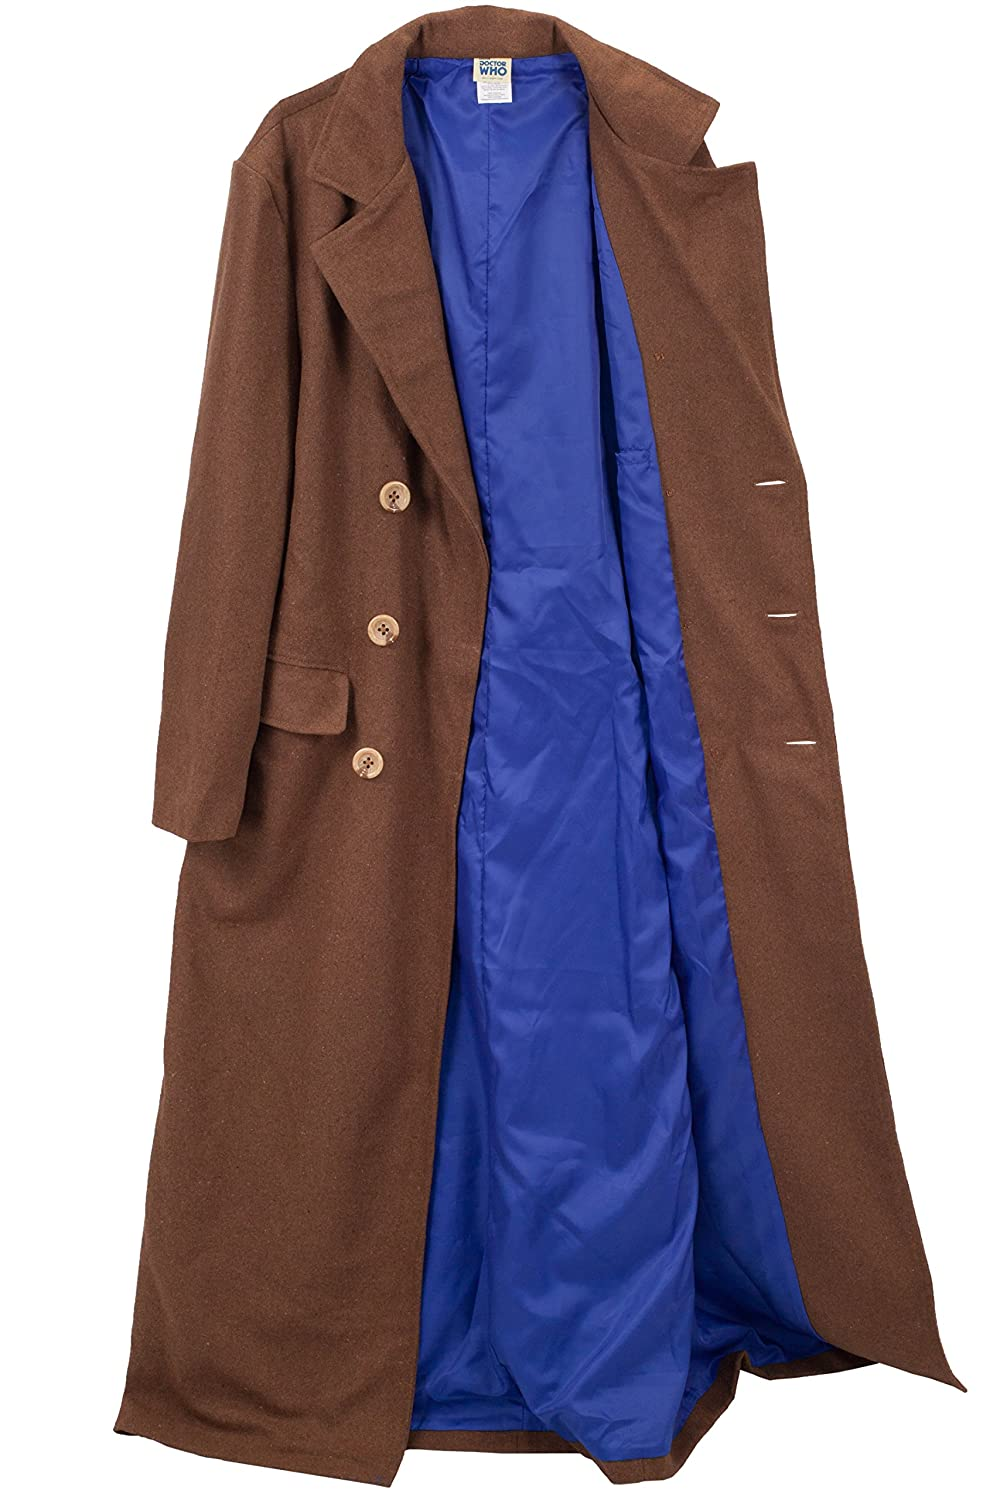 1920s Mens Coats & Jackets History Doctor Who Tenth Doctor Adult Costume Jacket $65.18 AT vintagedancer.com